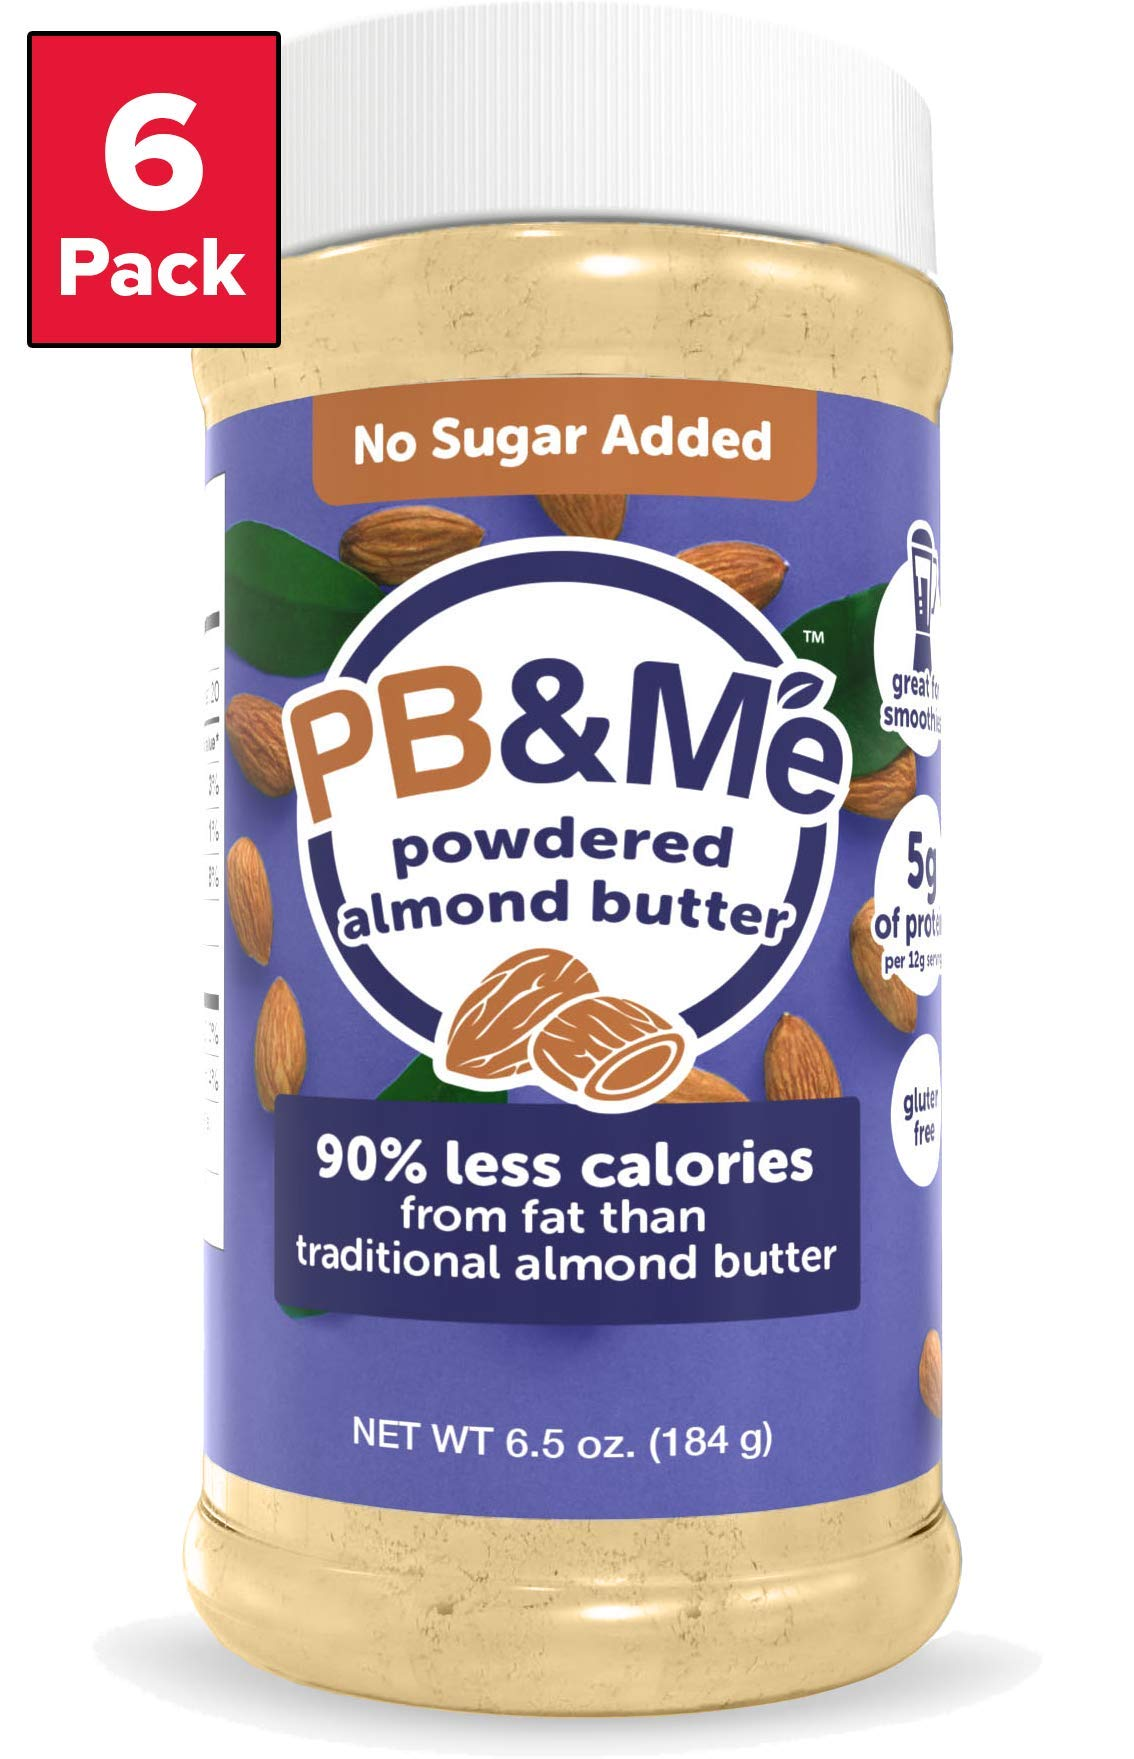 PB&Me Powdered Almond Butter, Keto Snack, Gluten Free, Plant Protein, No Sugar Added, 6.5 Ounce, 6 Count